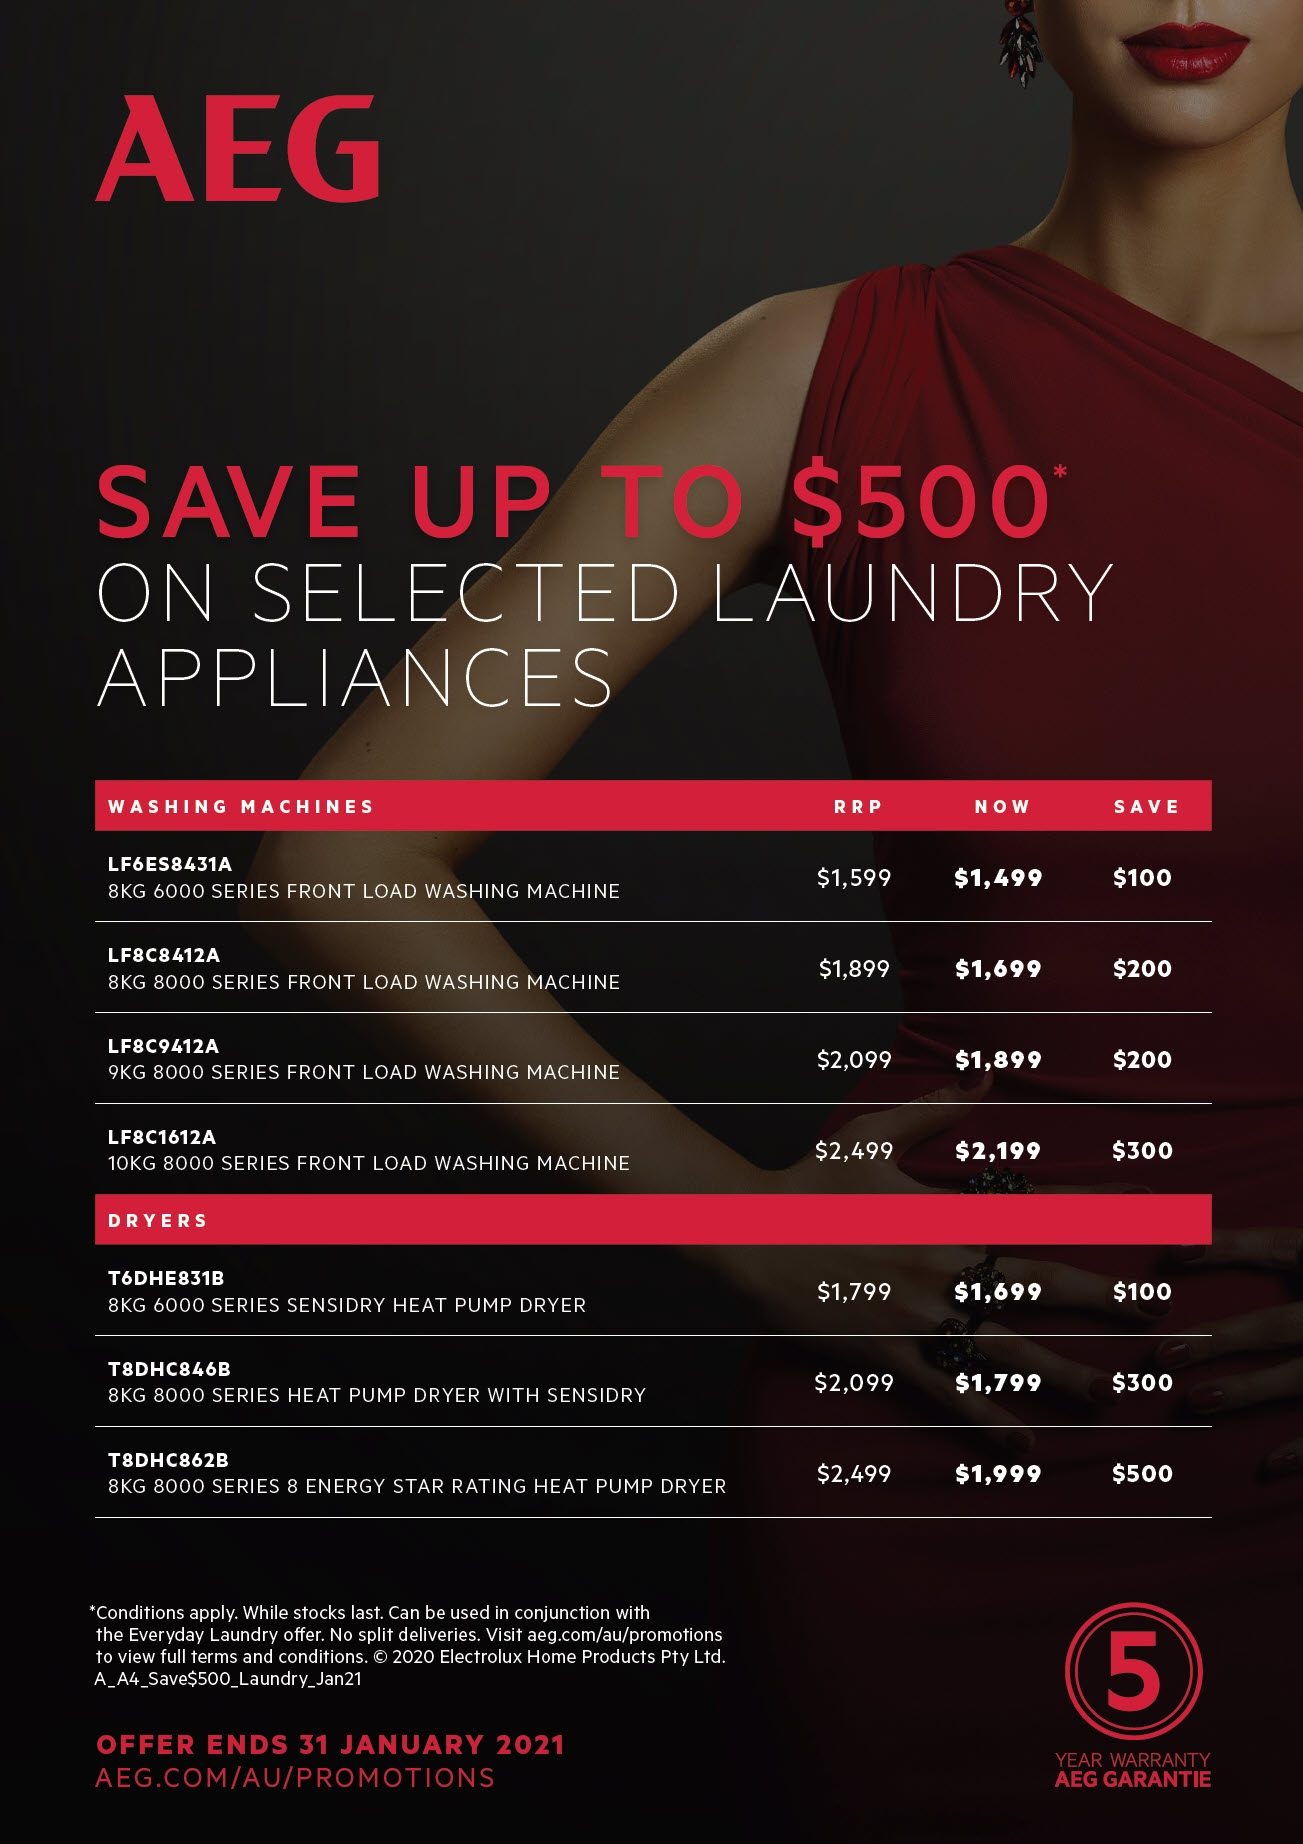 AEG Save Up To $500 on selected AEG Laundry Appliances Jan21